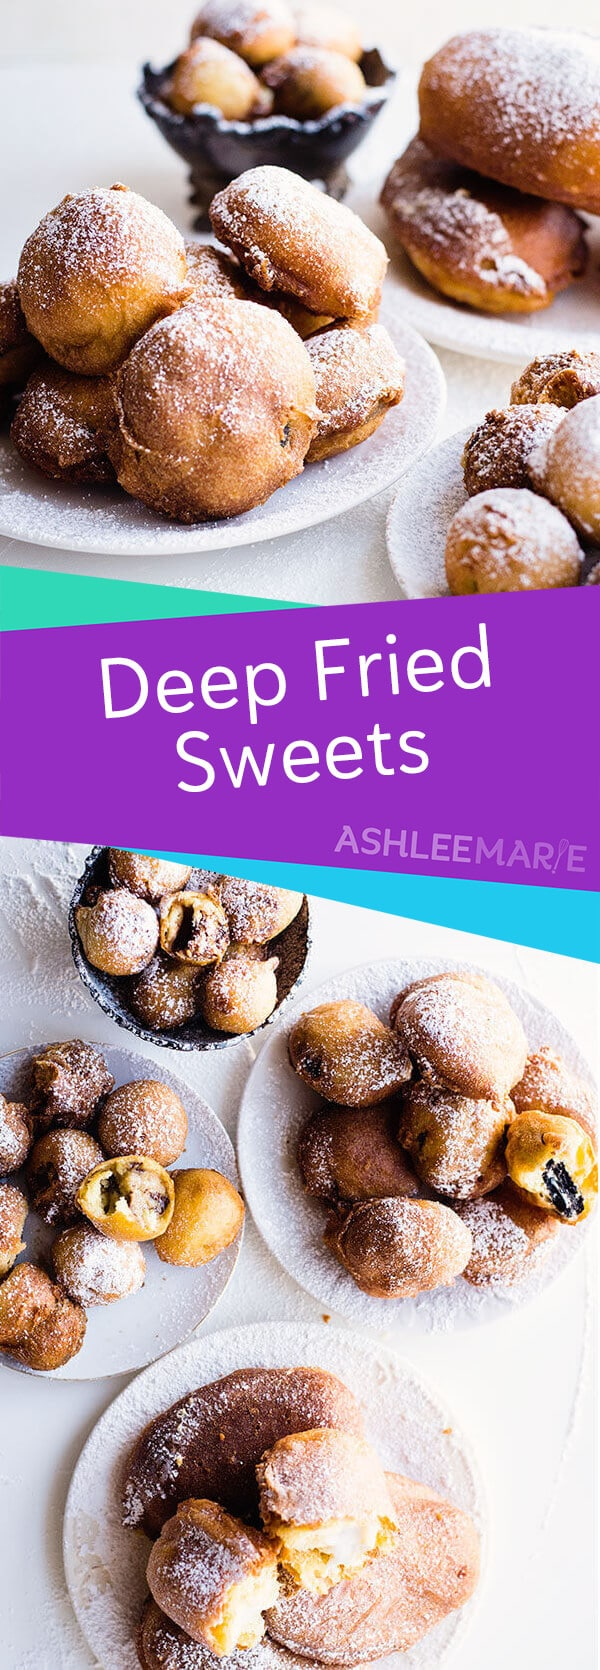 deep fried desserts - oreos, twinkies, snickers and cookie dough balls